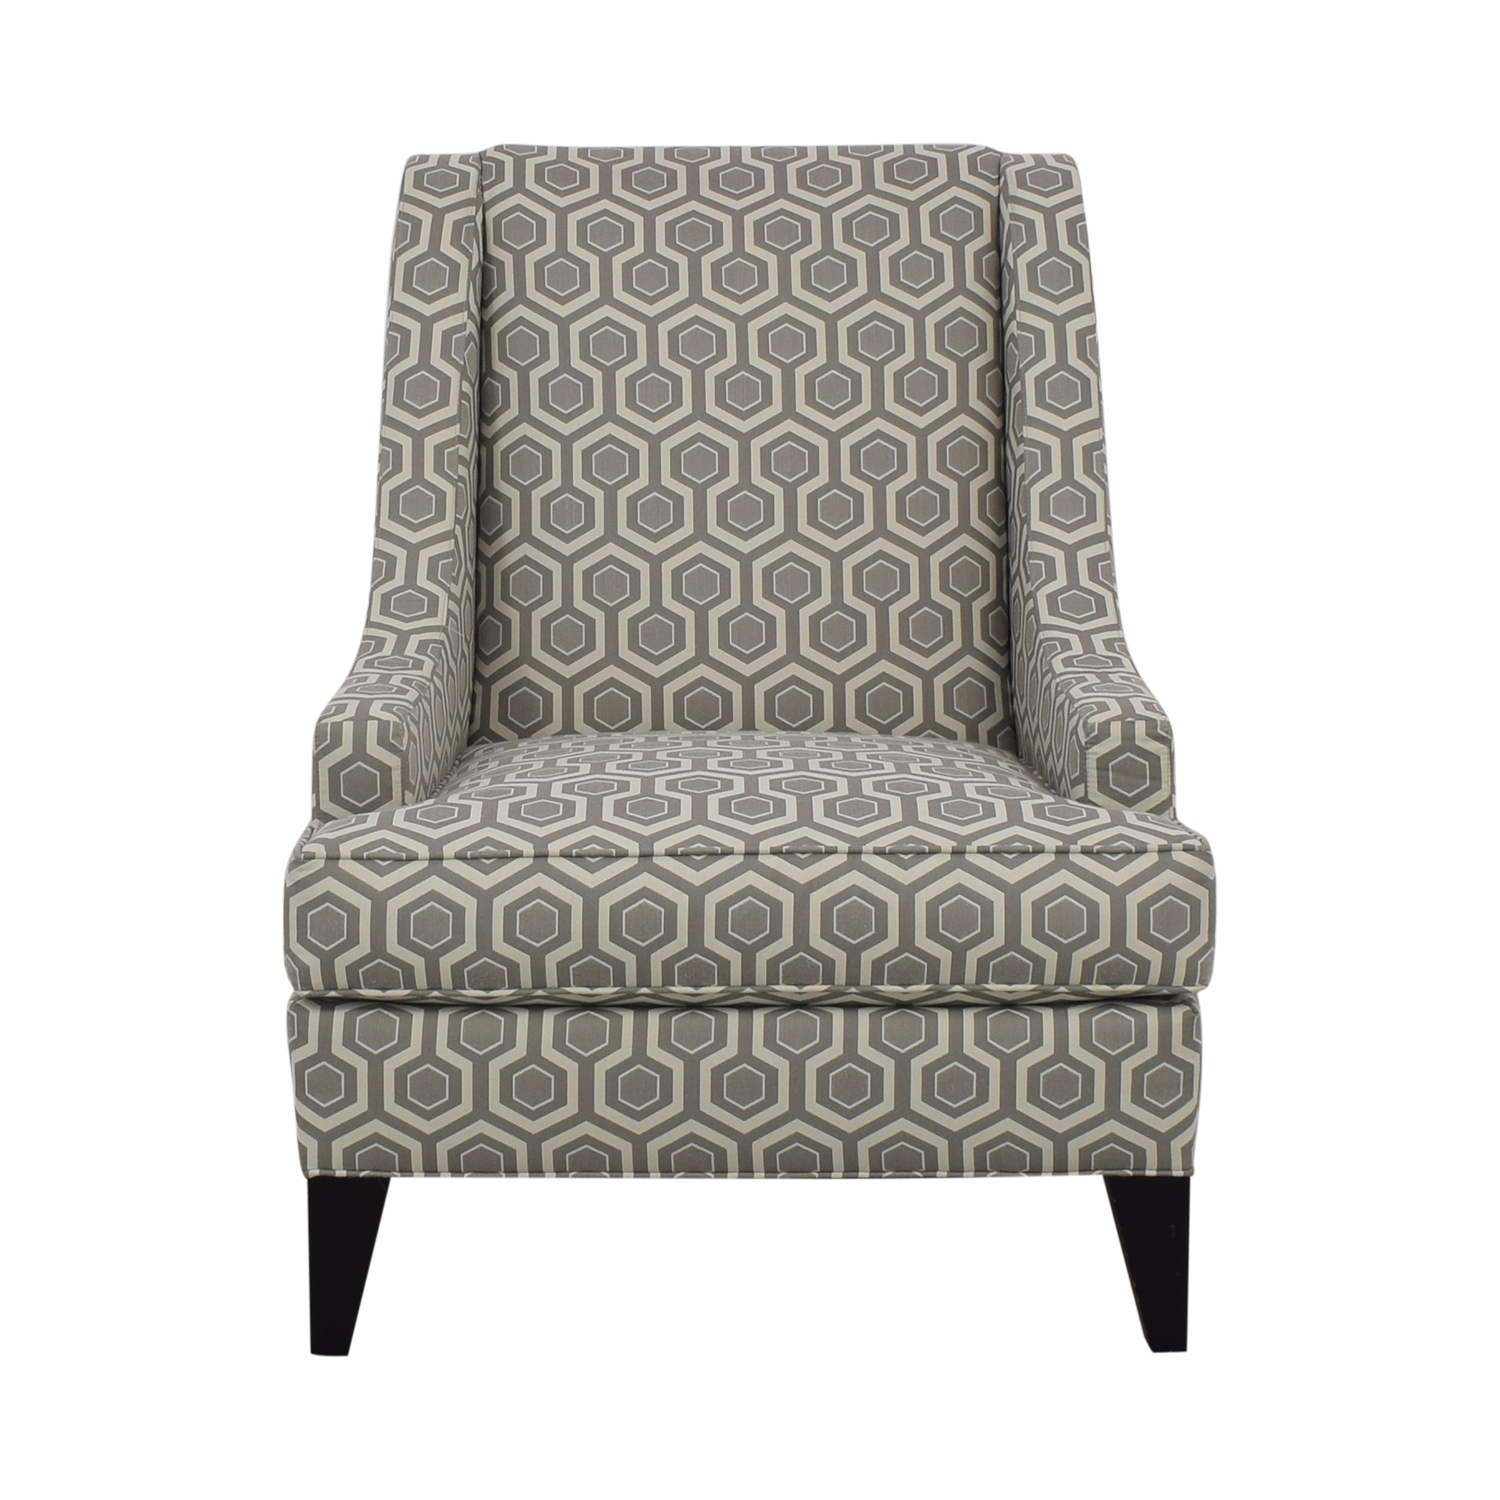 buy Ethan Allen Emerson Chair Ethan Allen Accent Chairs